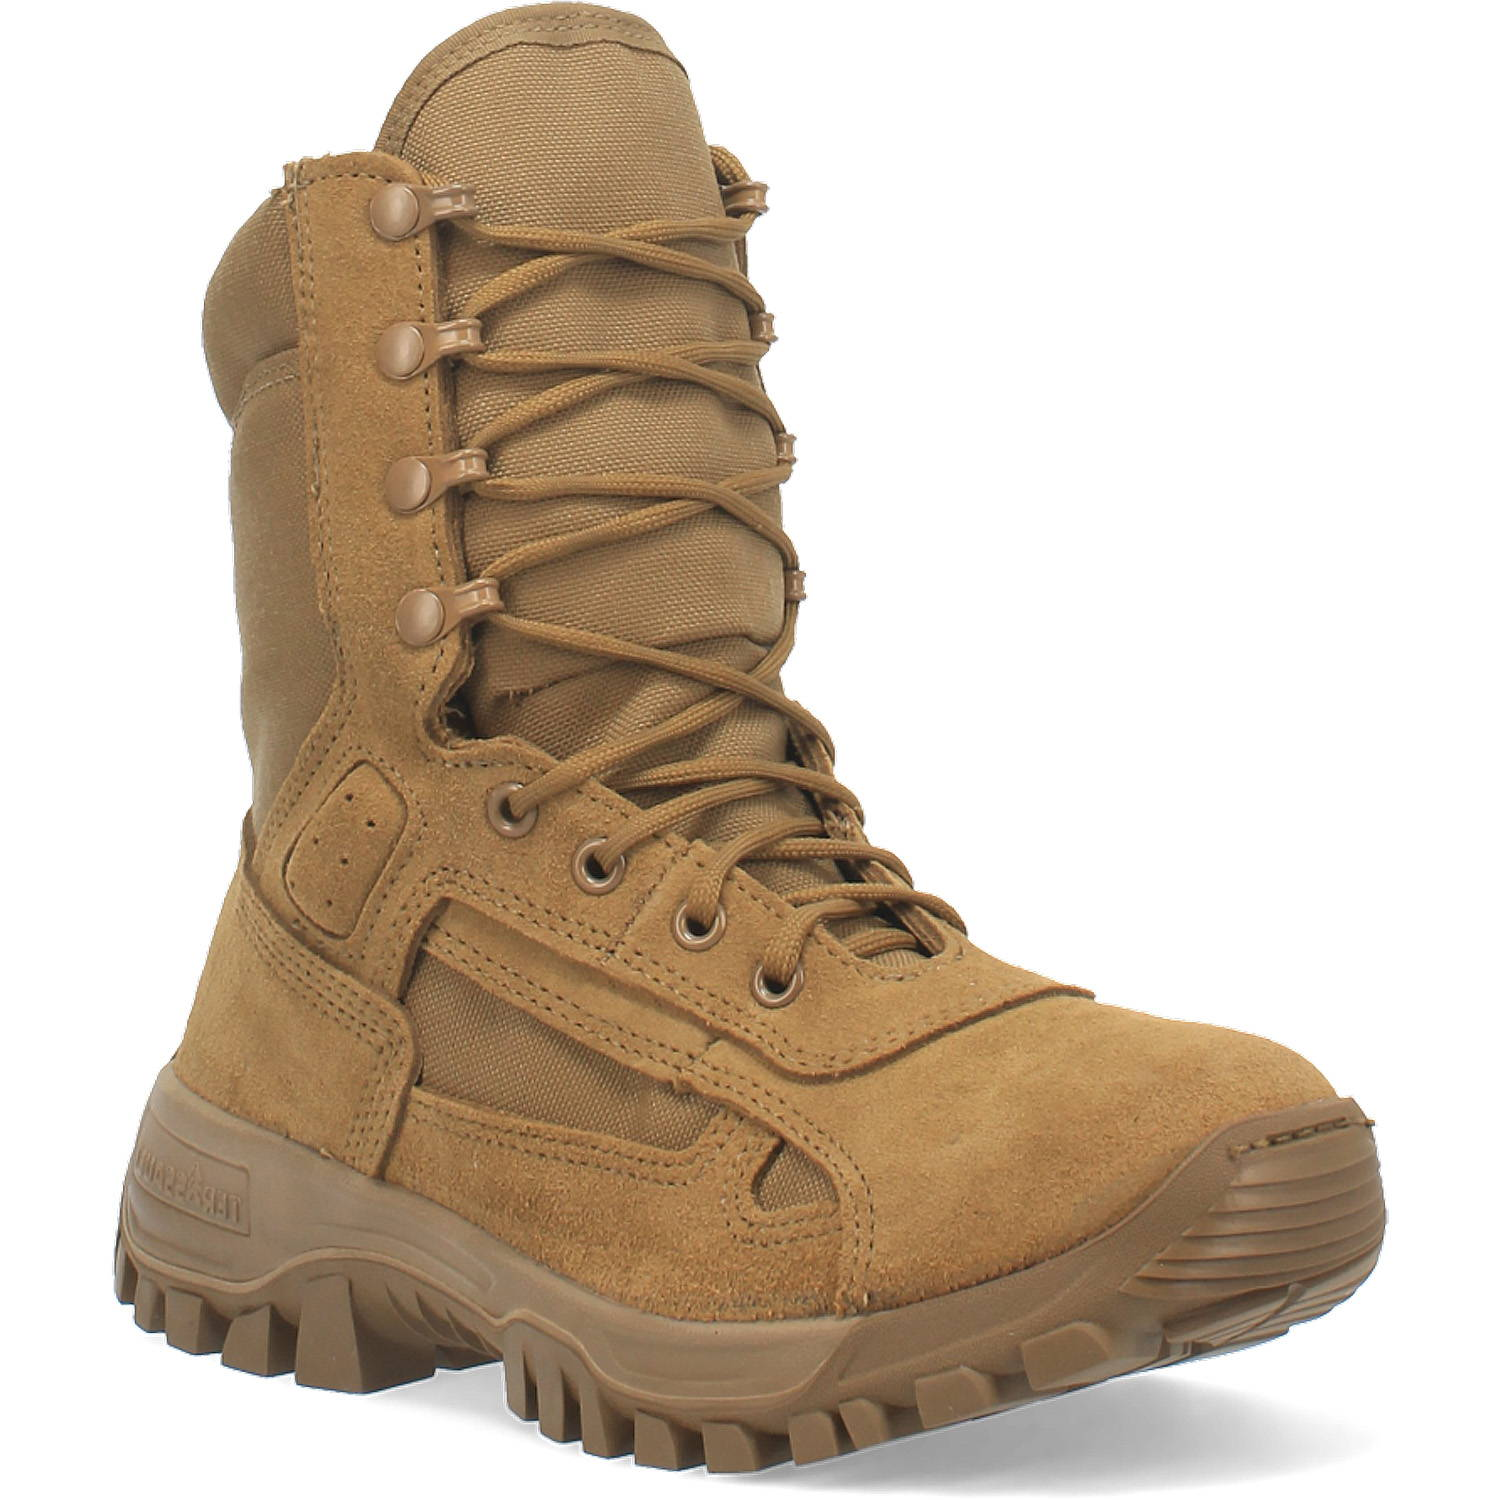 Terassult T1 Hot Weather Performance Combat Boot